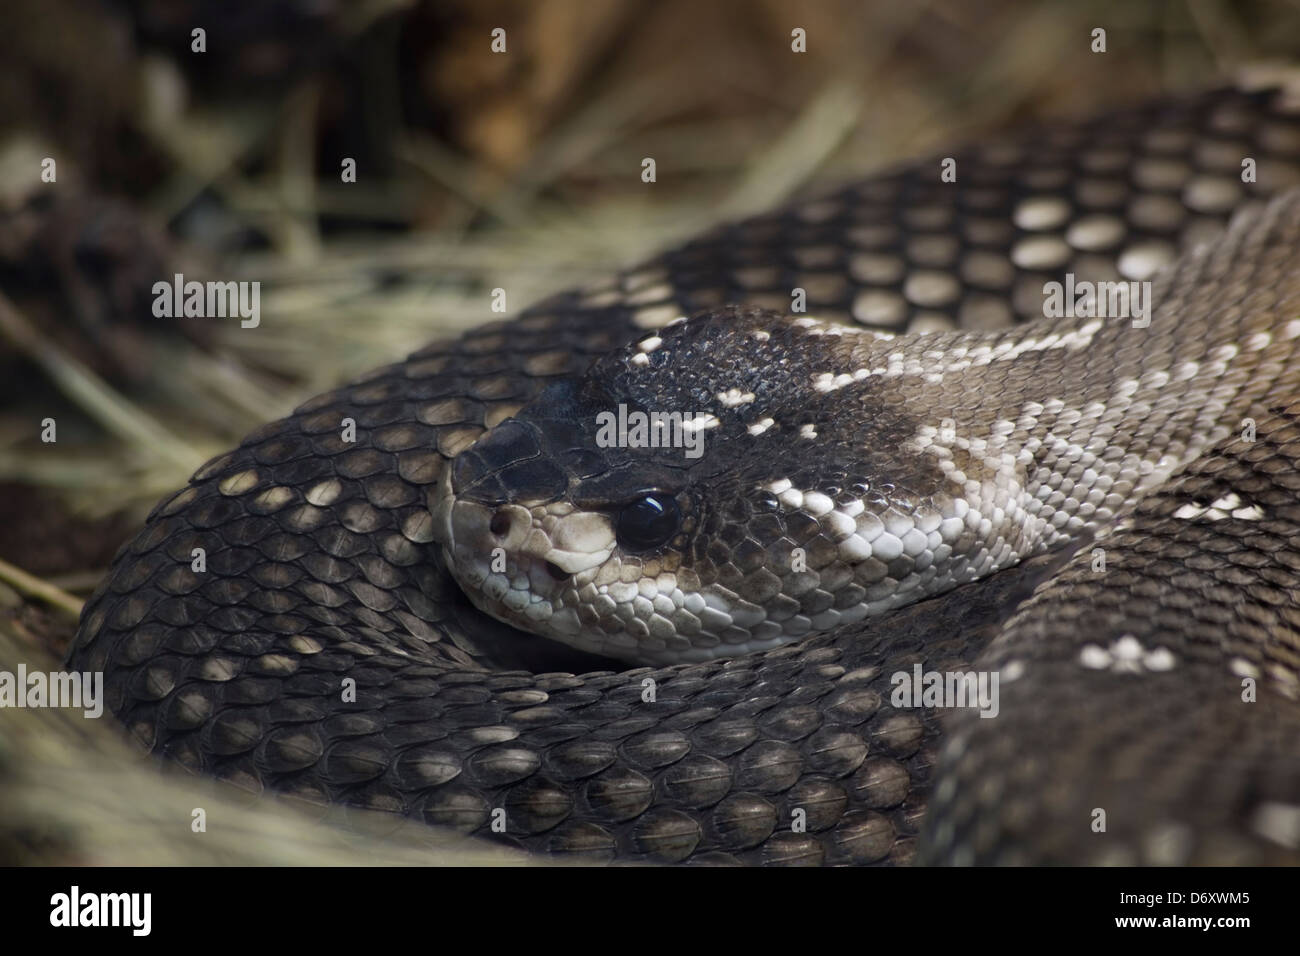 Mexican Black Tailed Rattlesnake, Crotalus Molossus Nigrescens Stock Photo